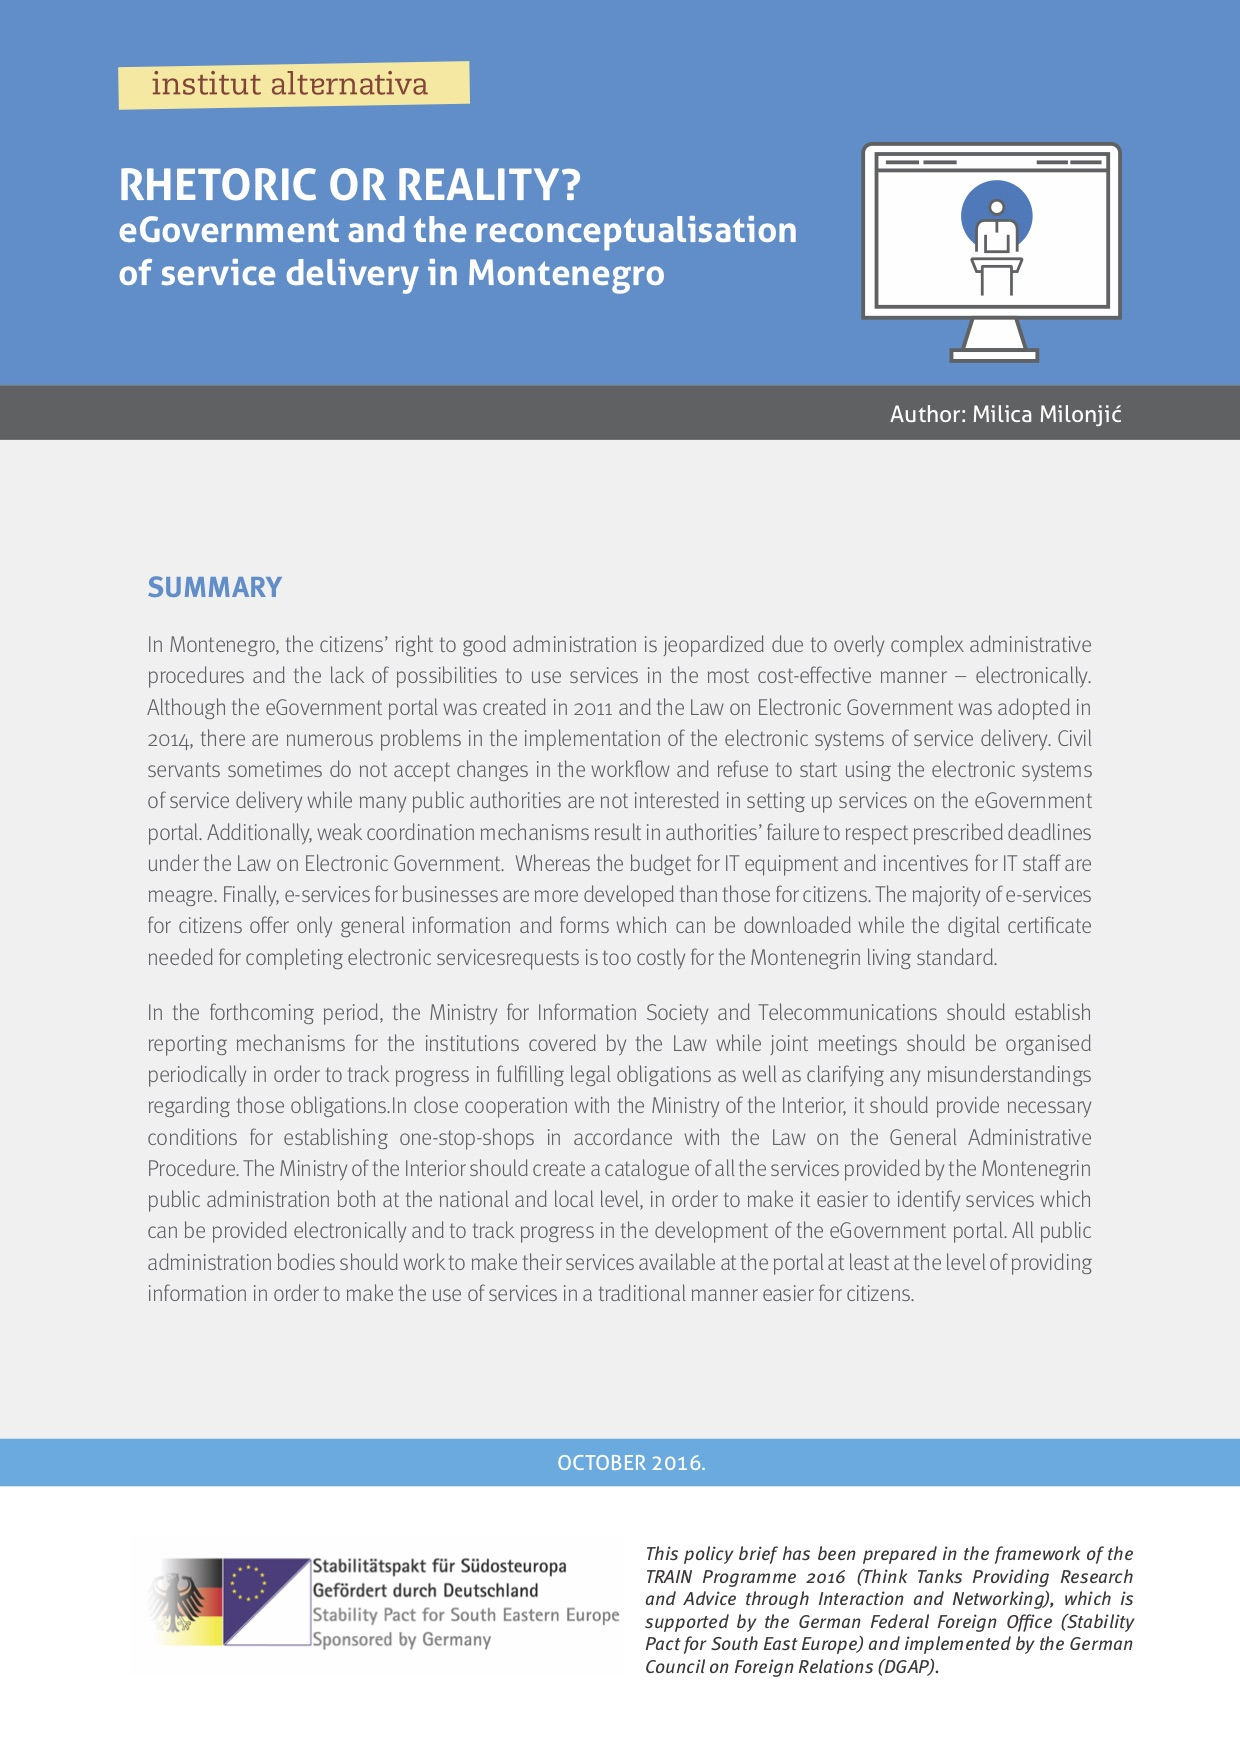 Rhetoric or reality? E-Government and the reconceptualisation of service delivery in Montenegro